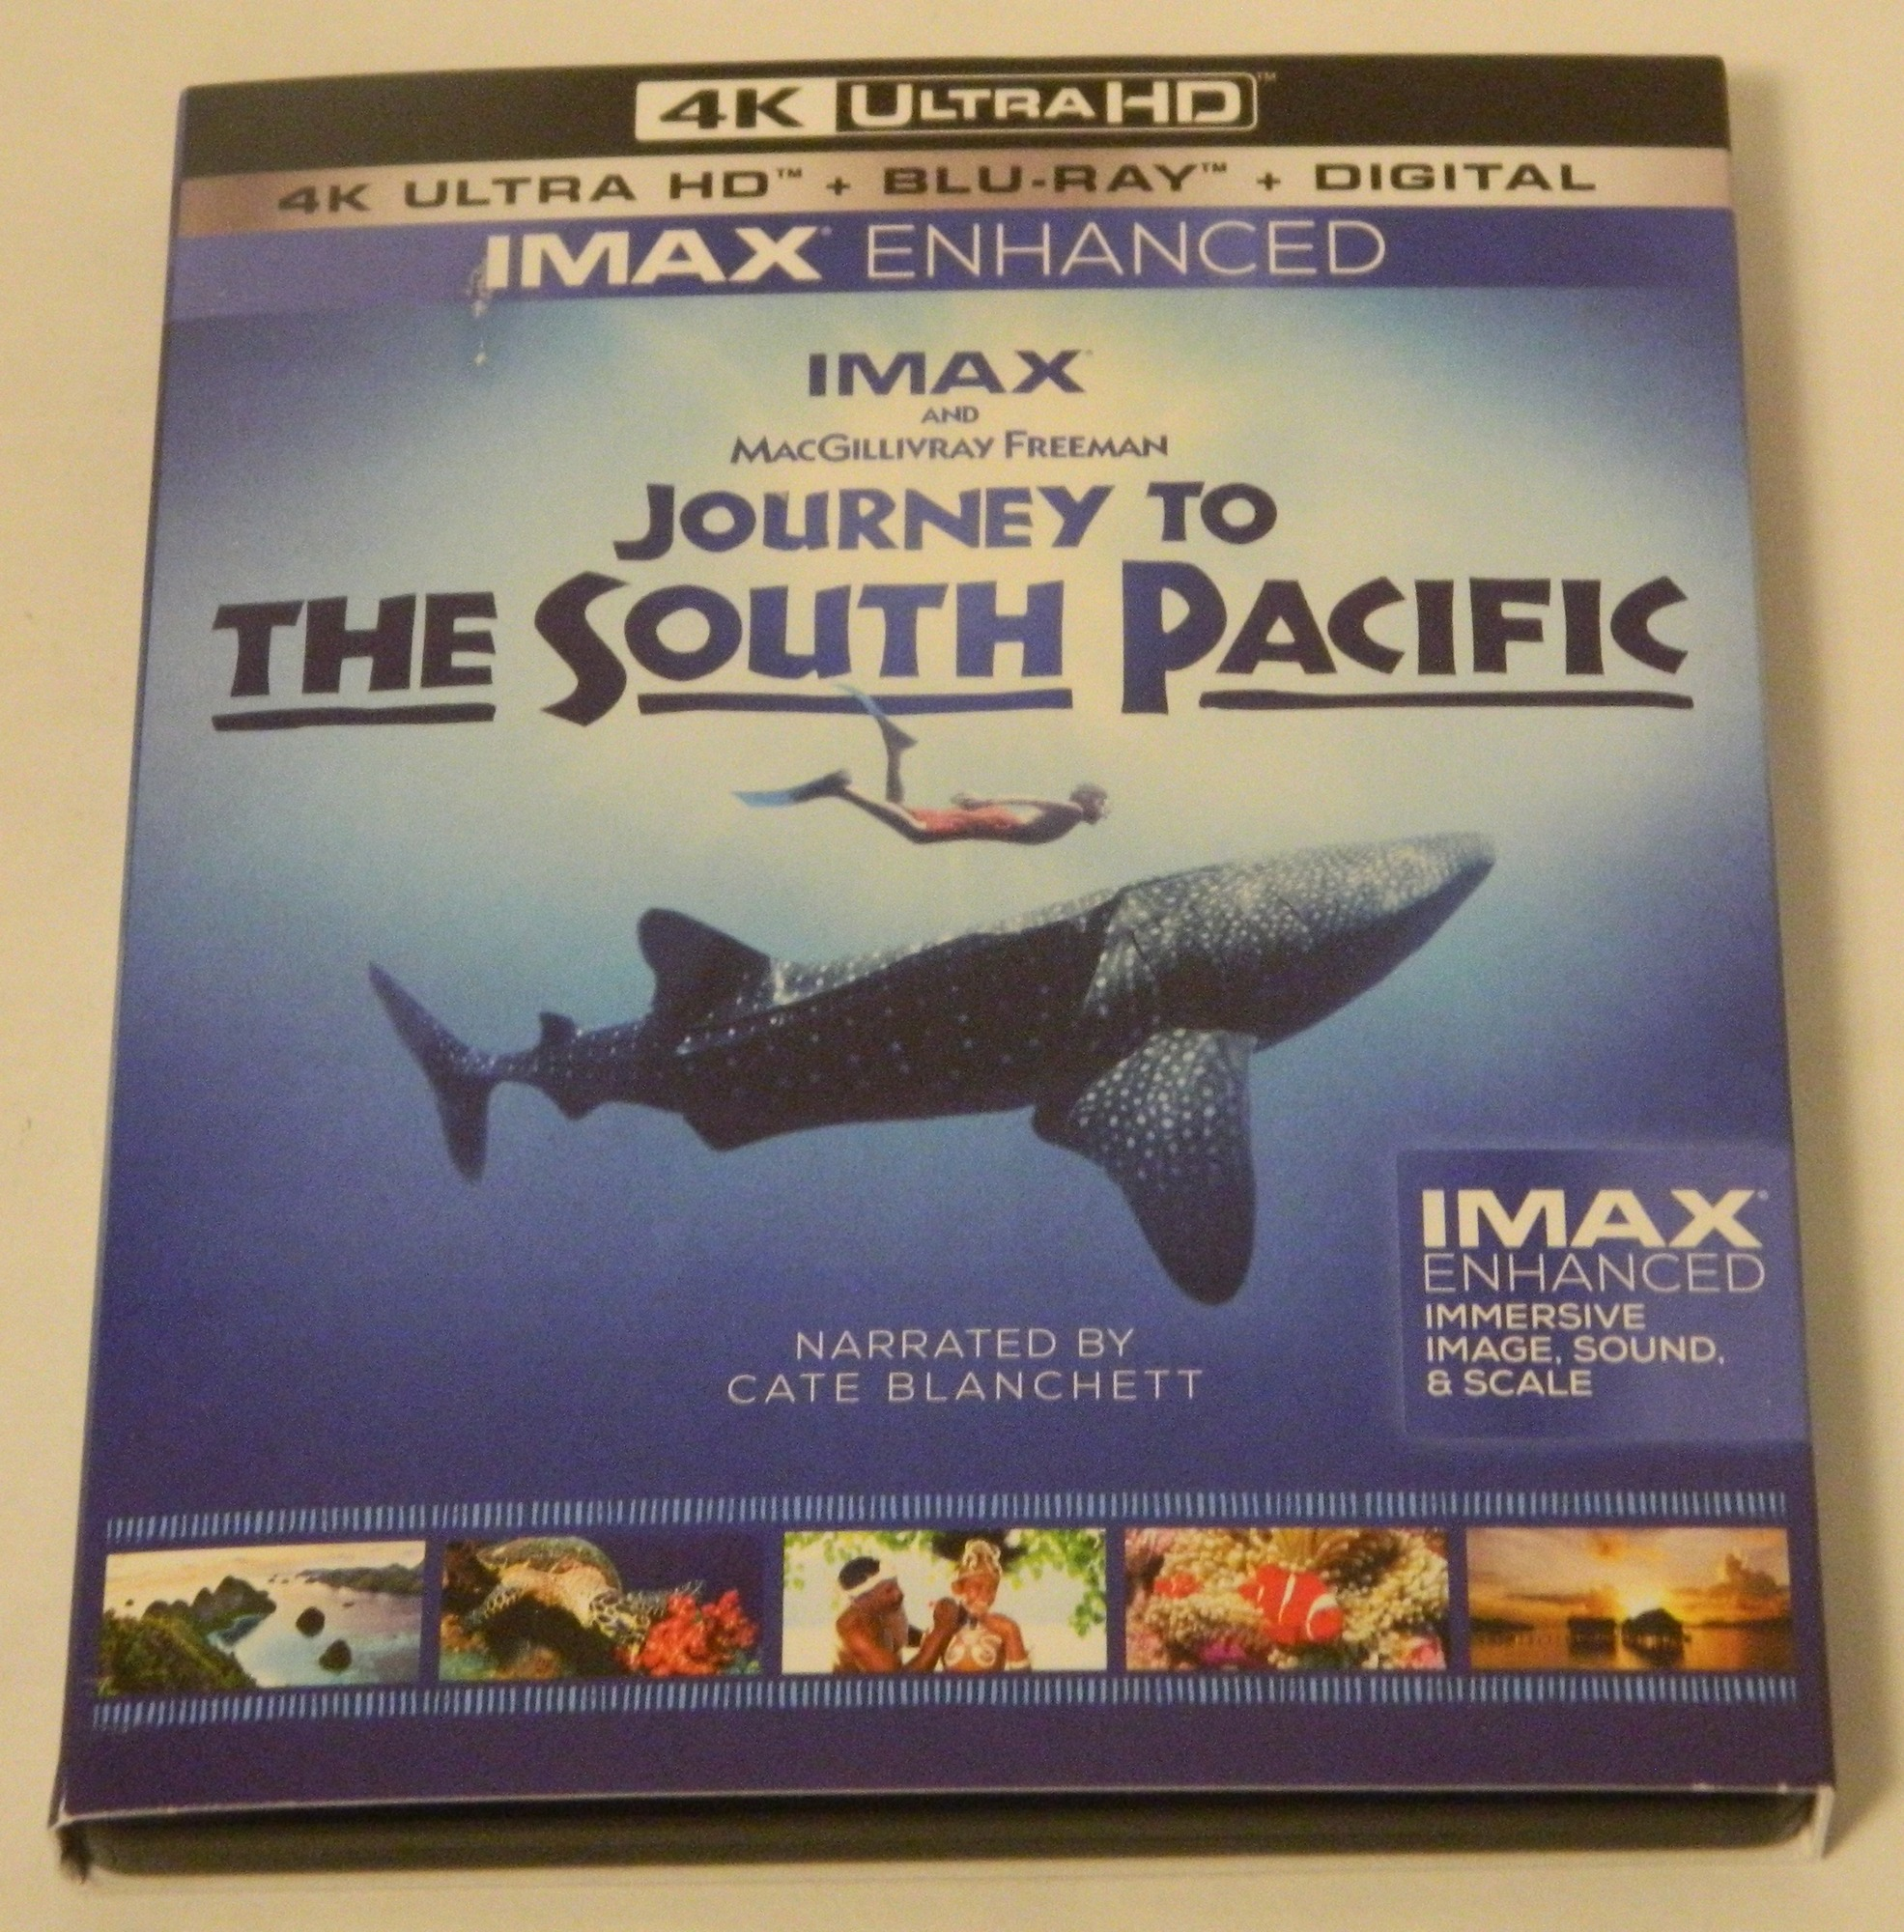 Journey to the South Pacific 4K Ultra HD